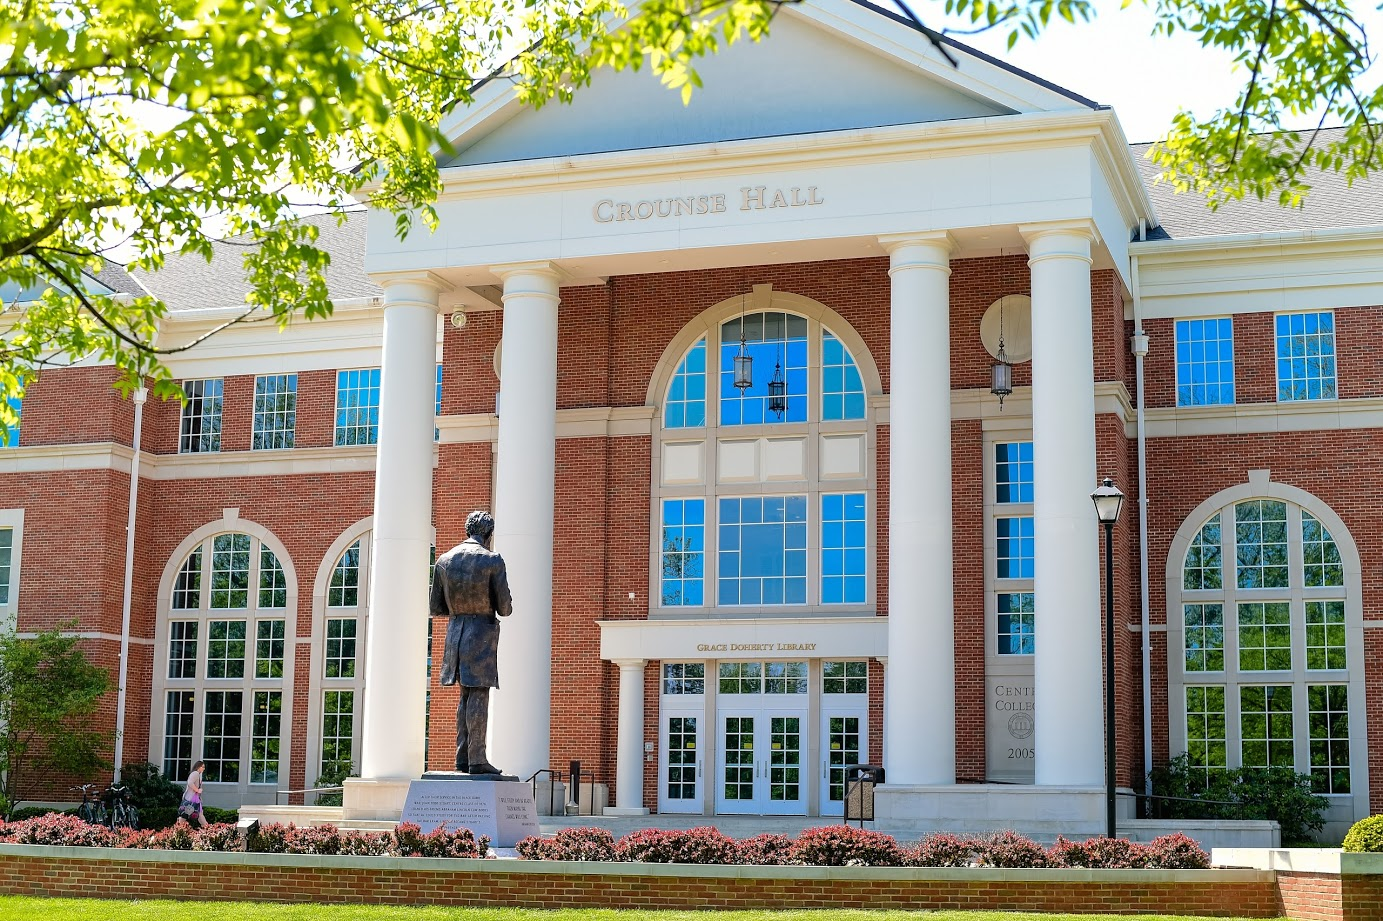 exterior image of Crounse hall